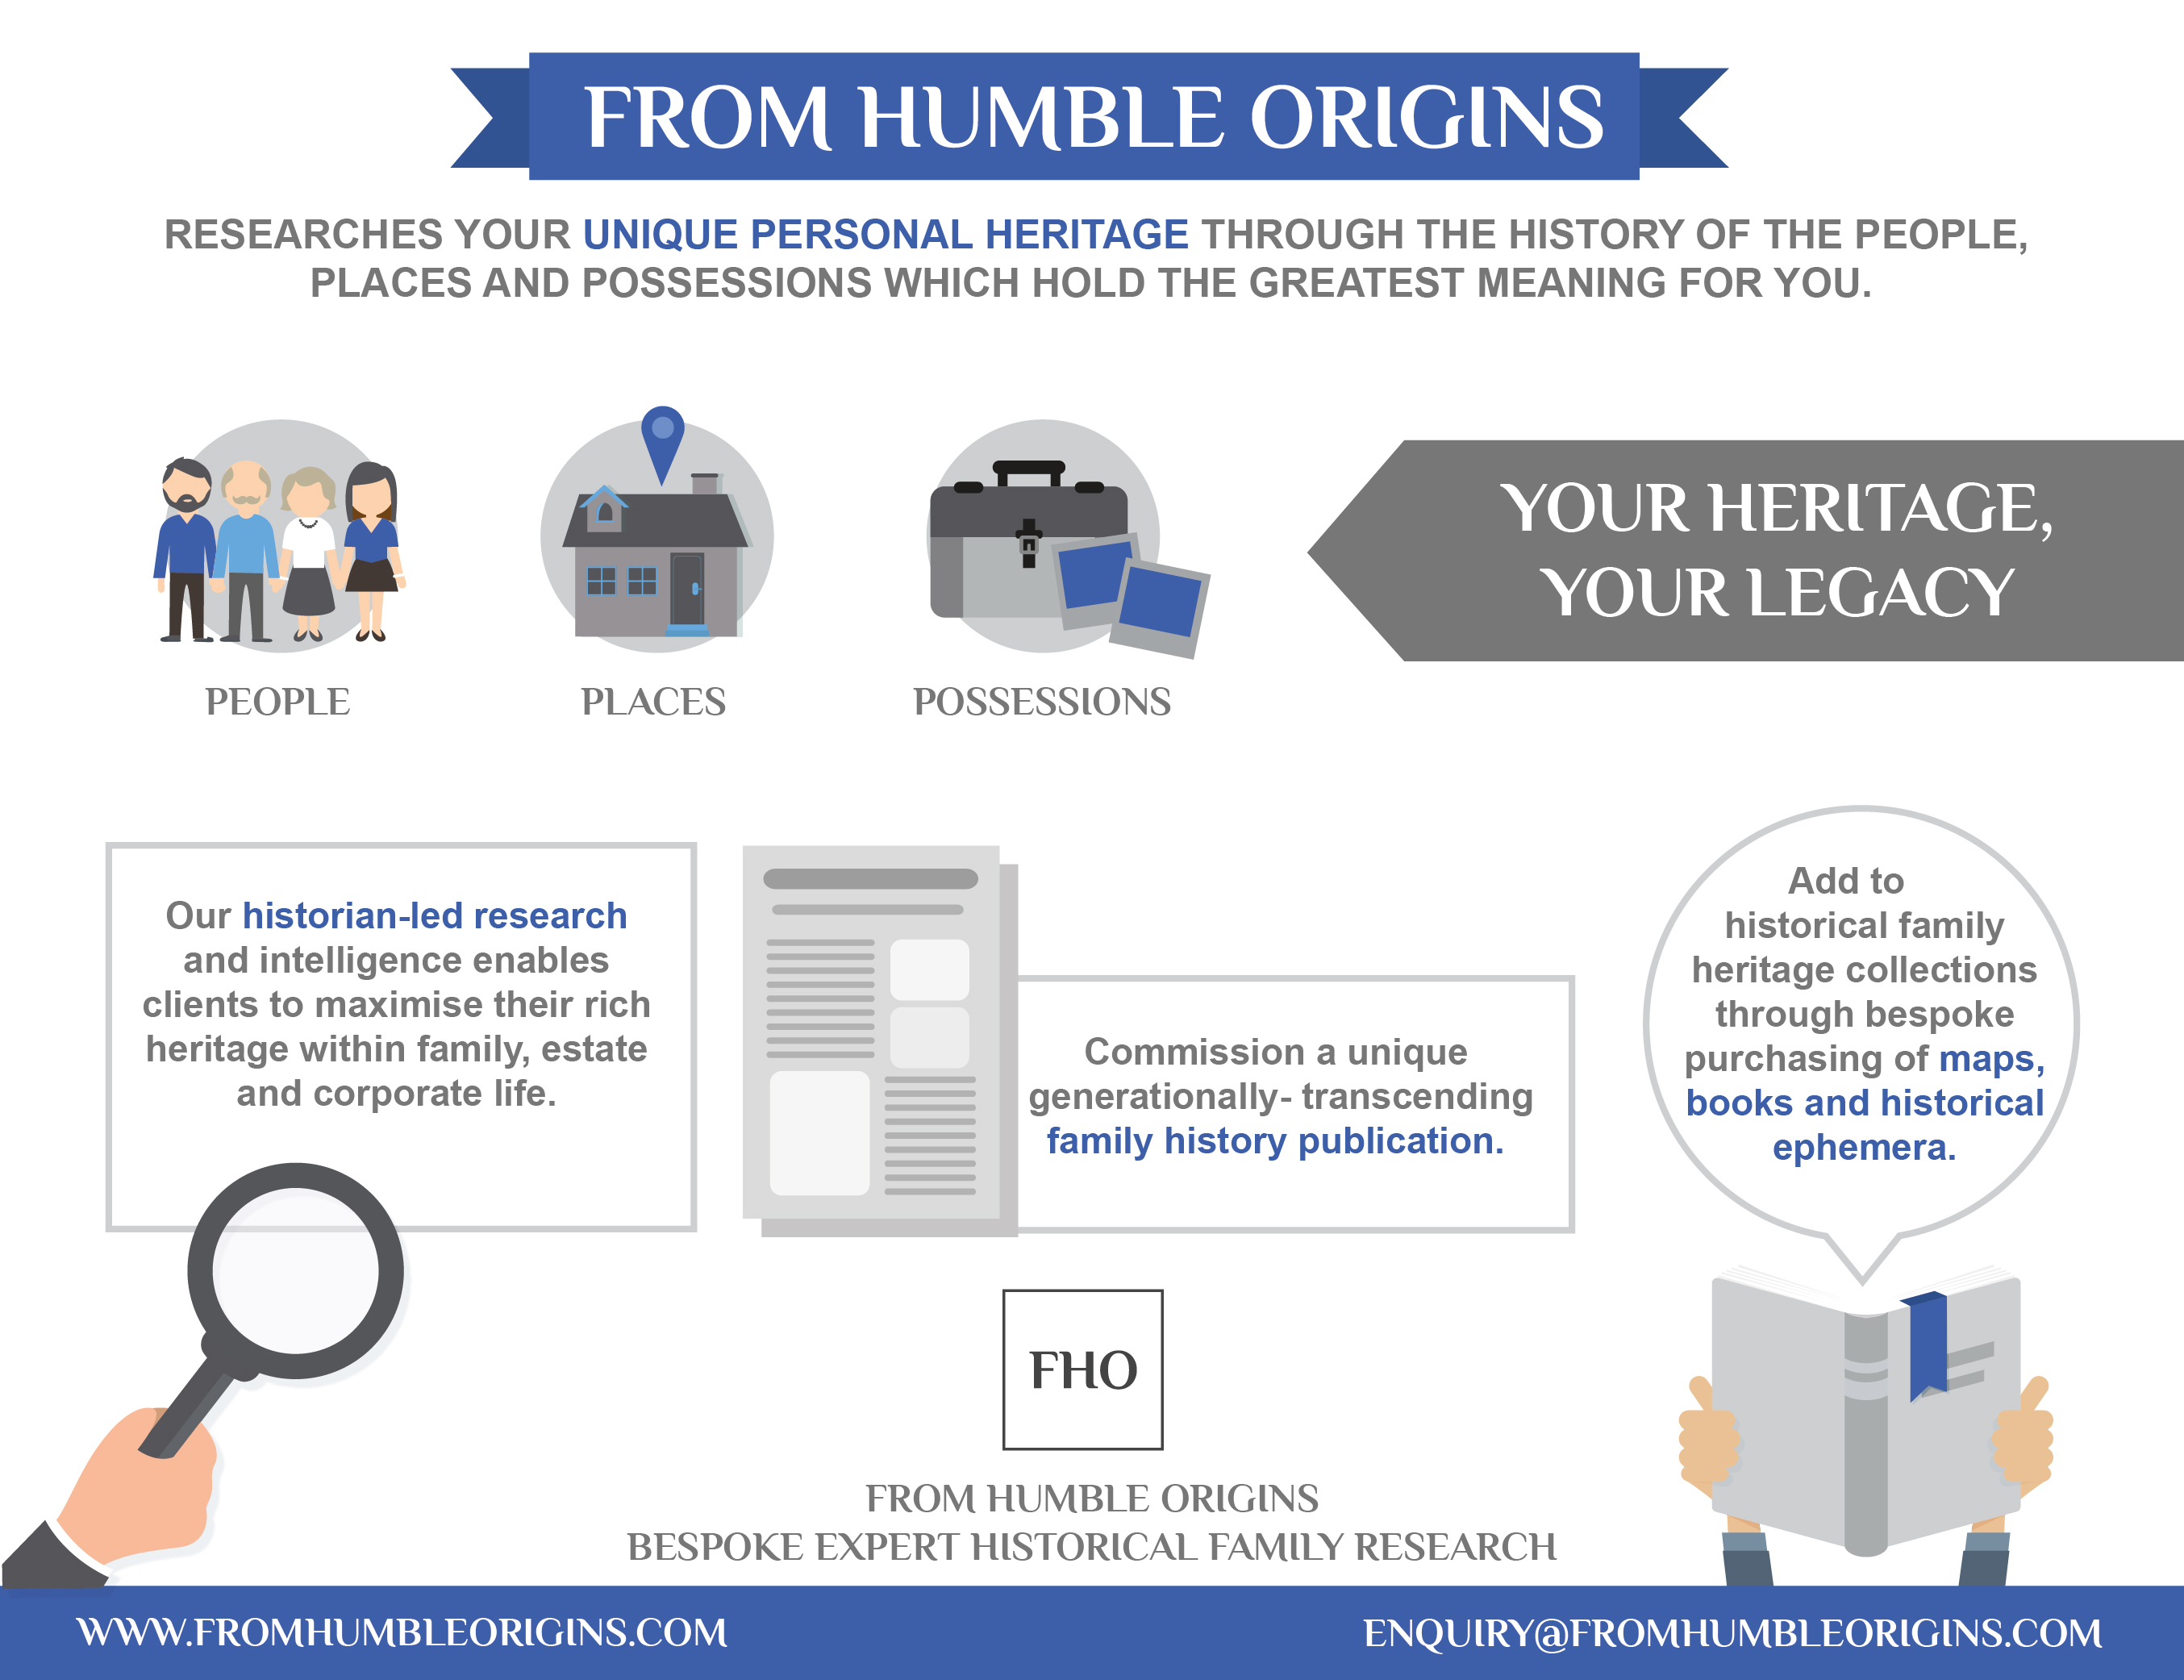 FROM HUMBLE ORIGINS infographic researching European family history through people, places and possessions.